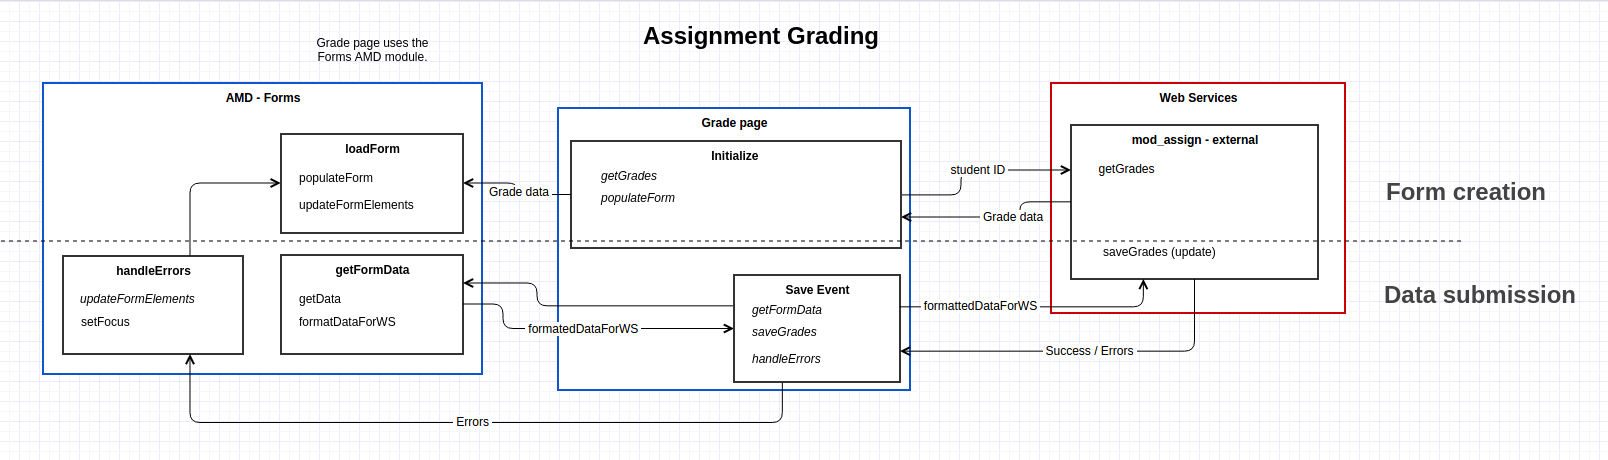 assignment-grading.png